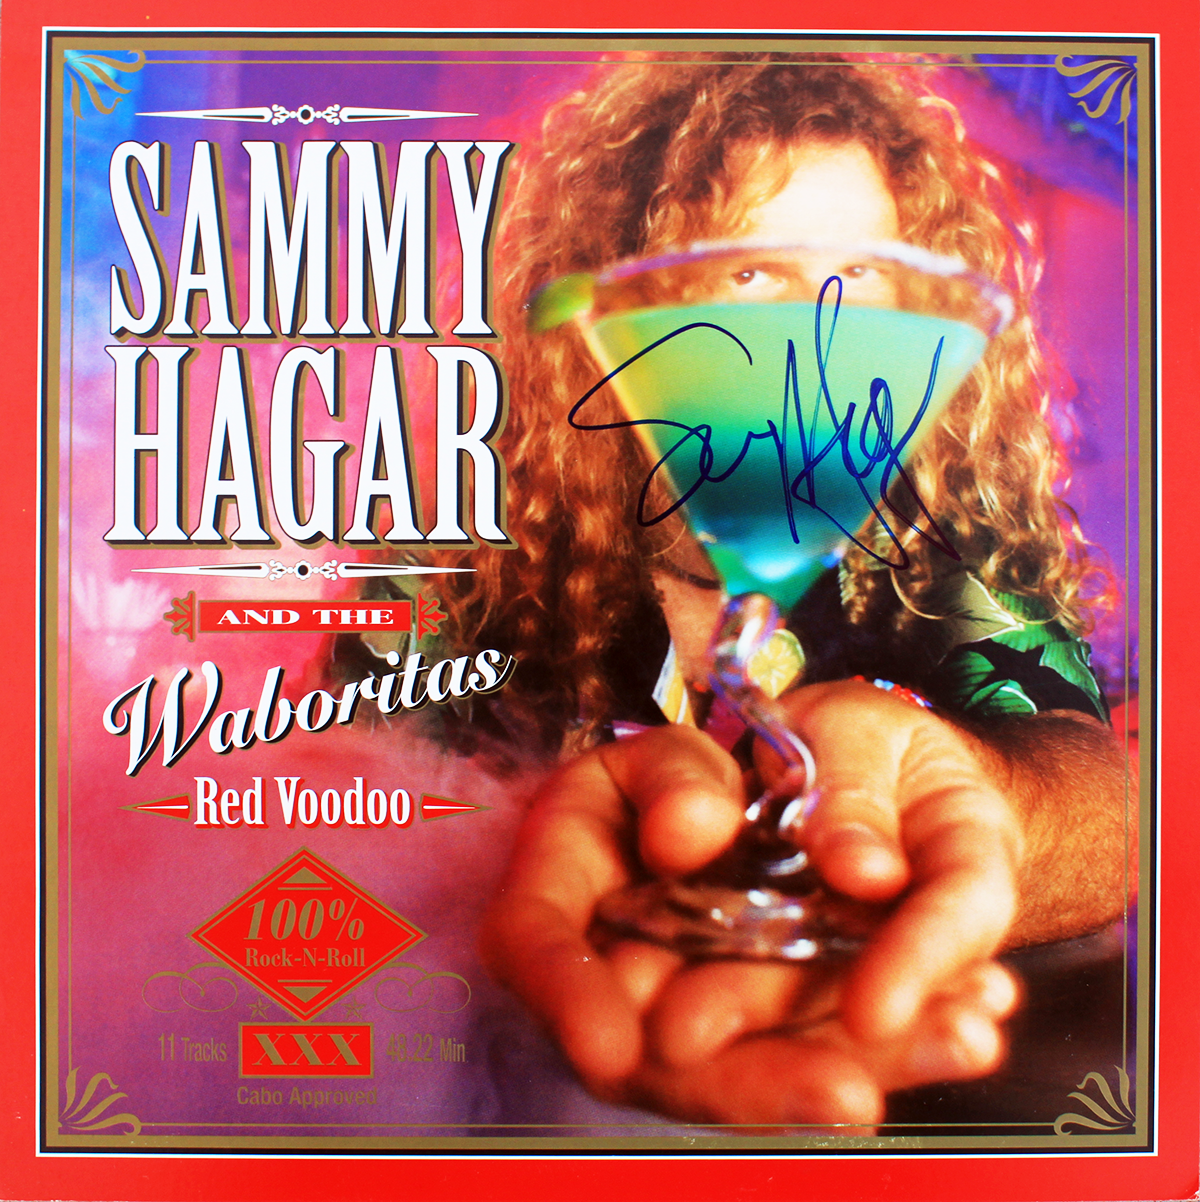 LP - Sammy Hagar and the Waboritas - Red Voodoo #1